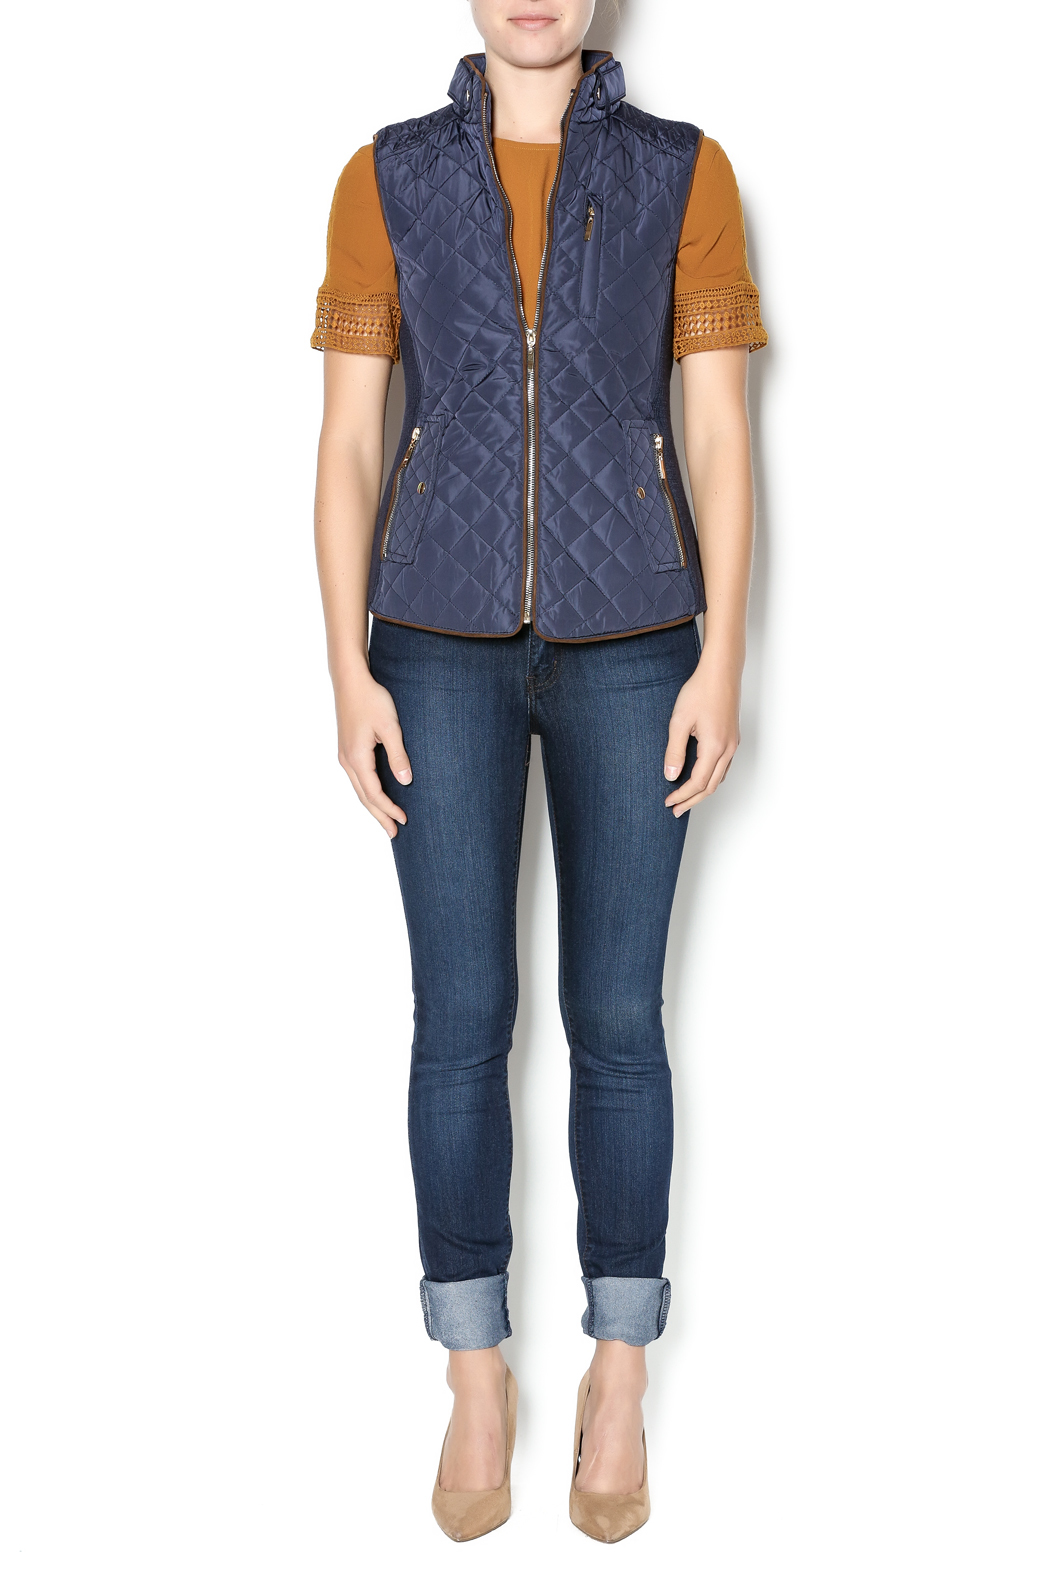 Charlie Paige Quilted Vest From Massachusetts By Lately